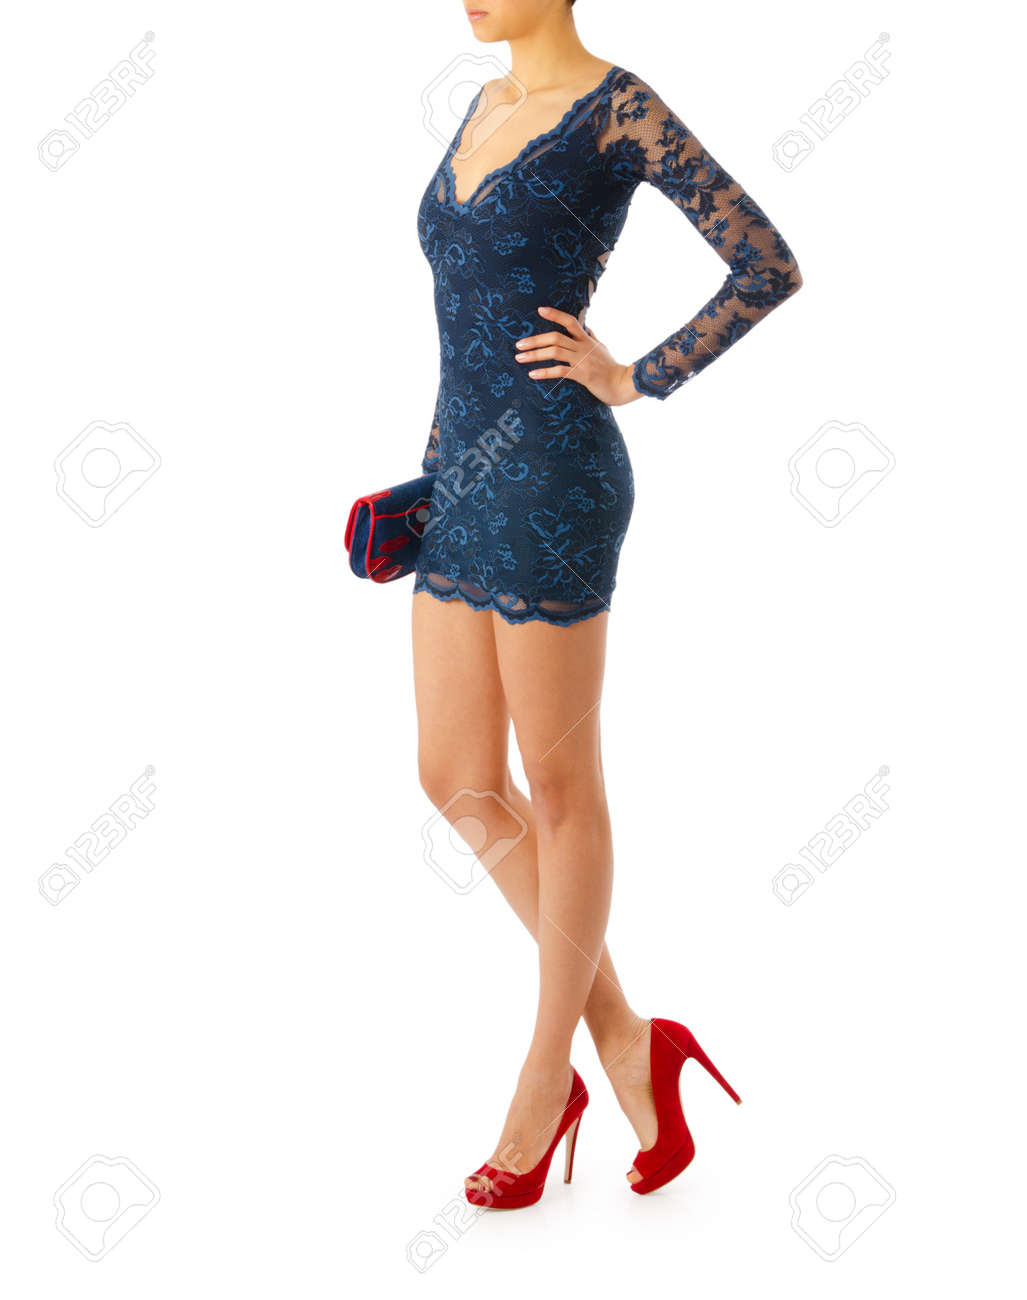 Woman in fashion dress concept on white Stock Photo - 20838842